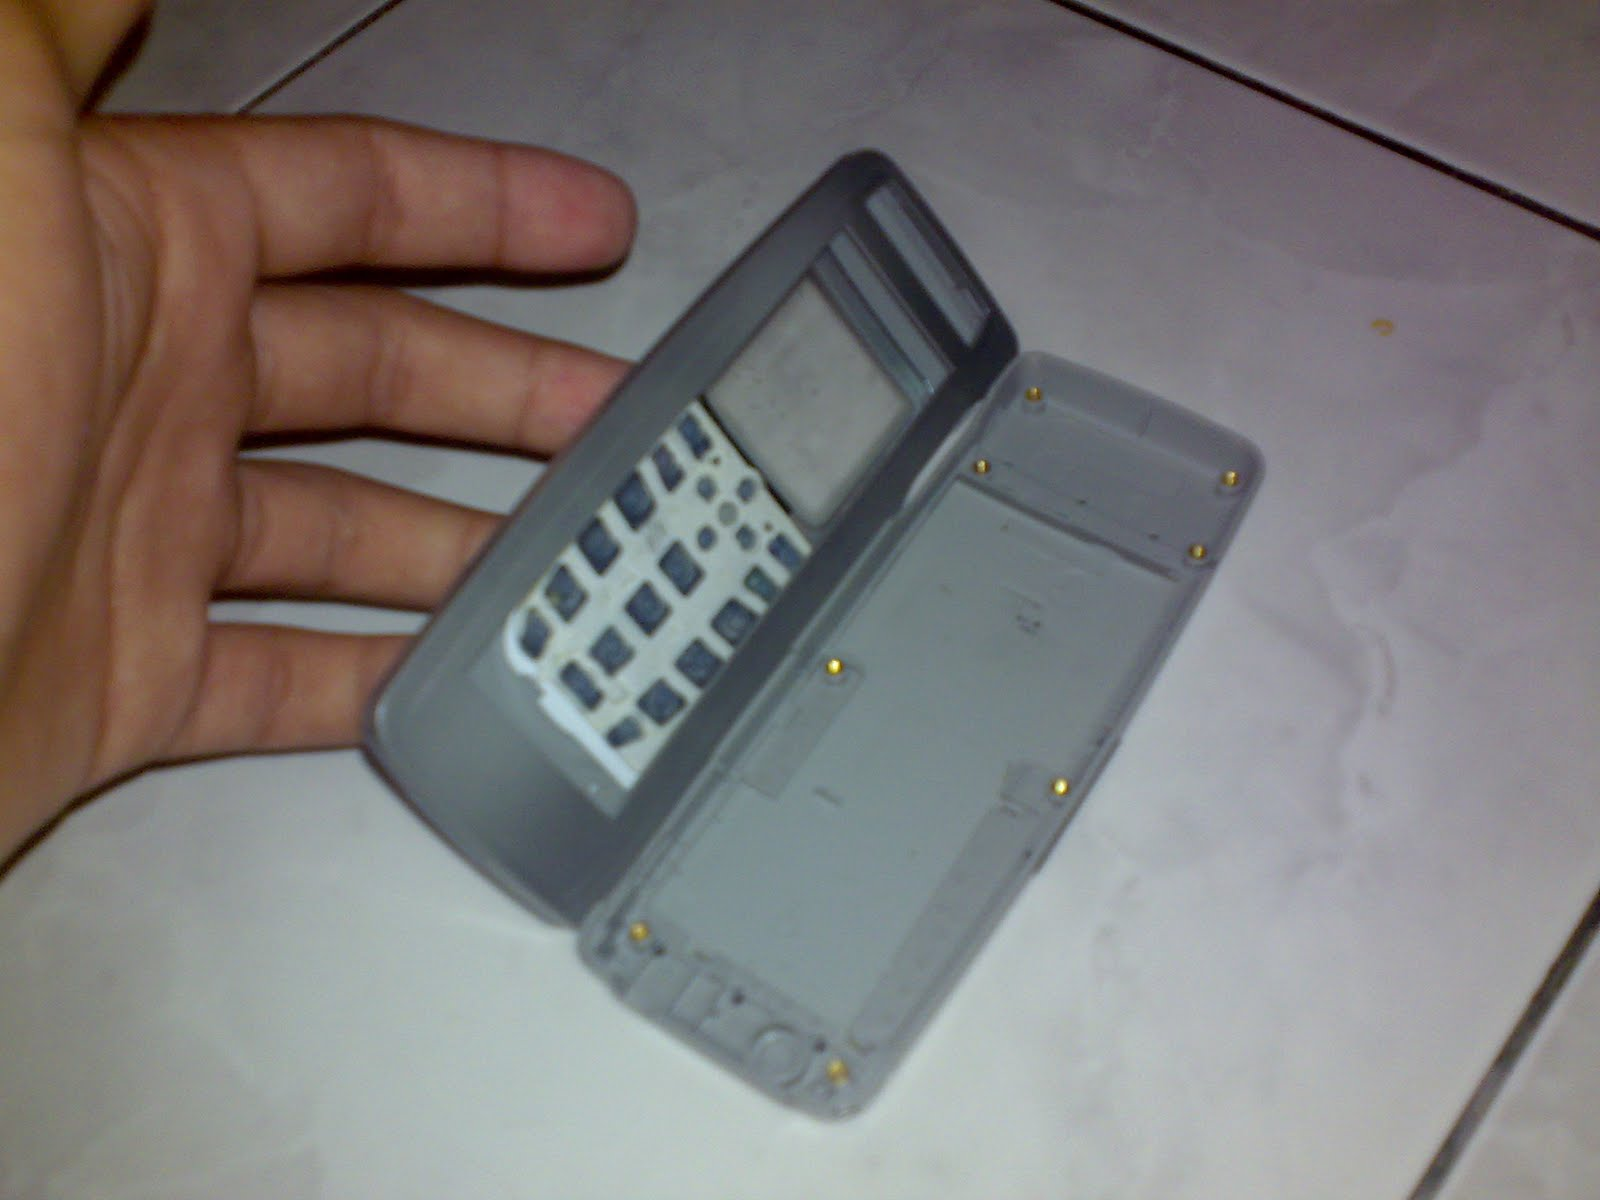 Fajar Jual Casing Nokia 9300 Communicator